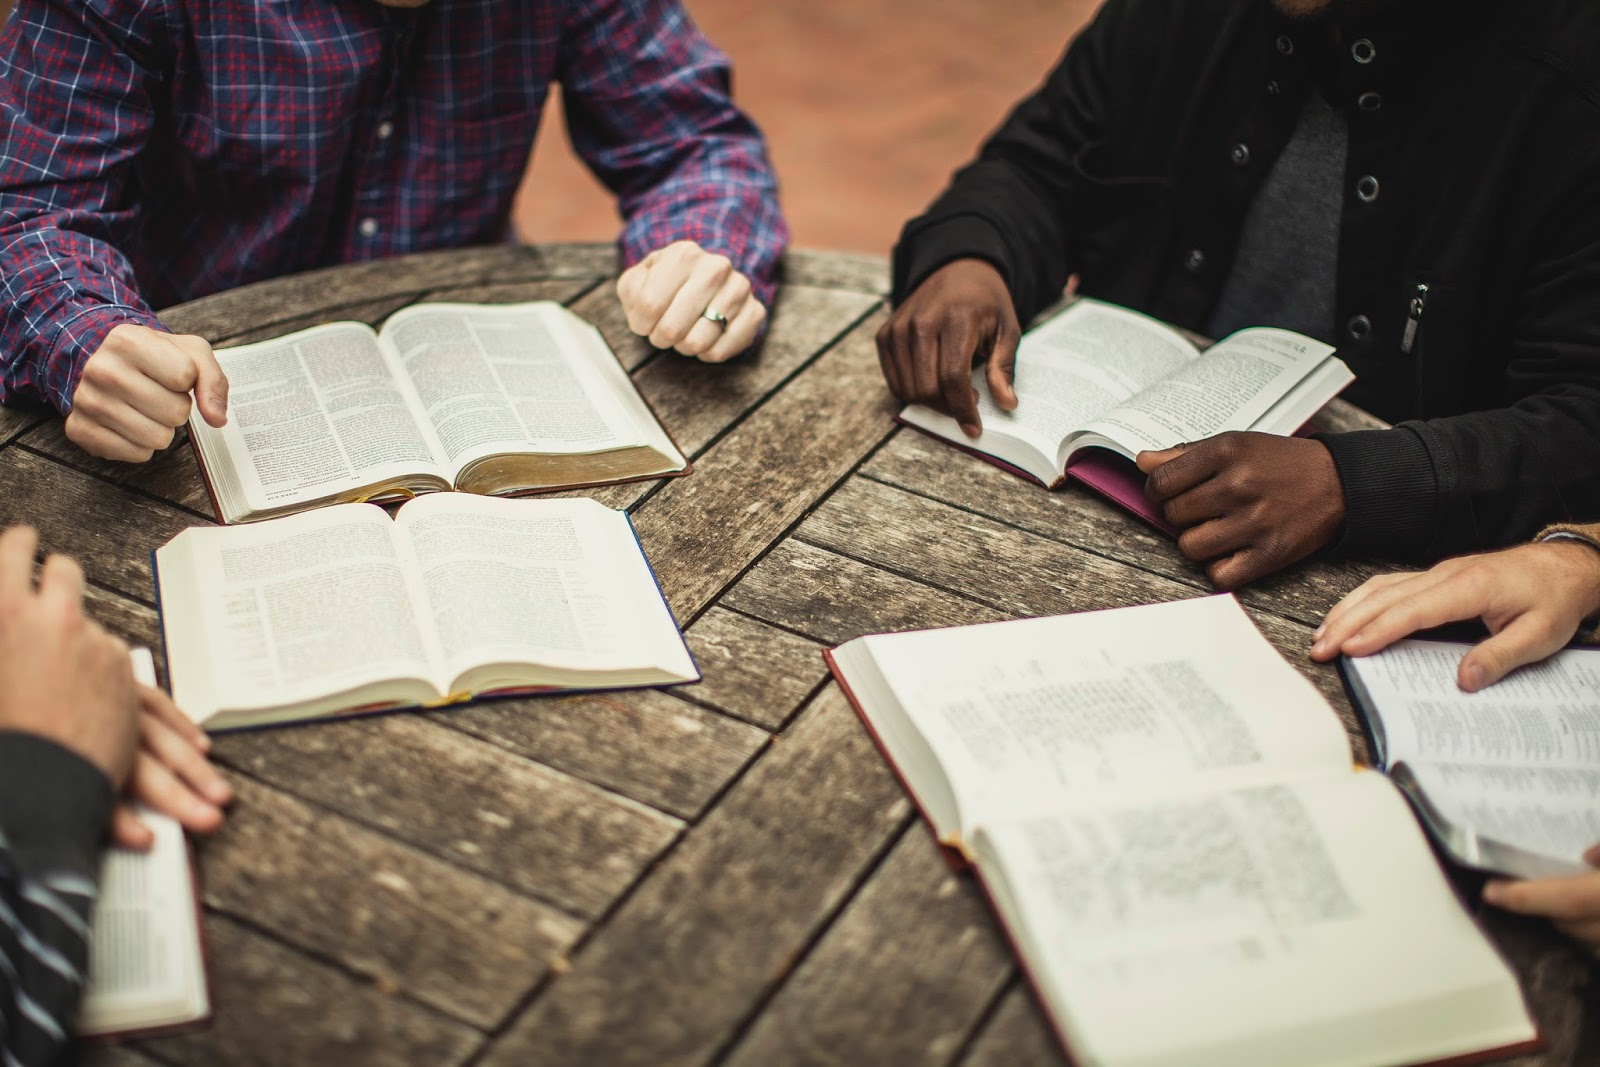 International Christian Bible Fellowship: The Importance of Small